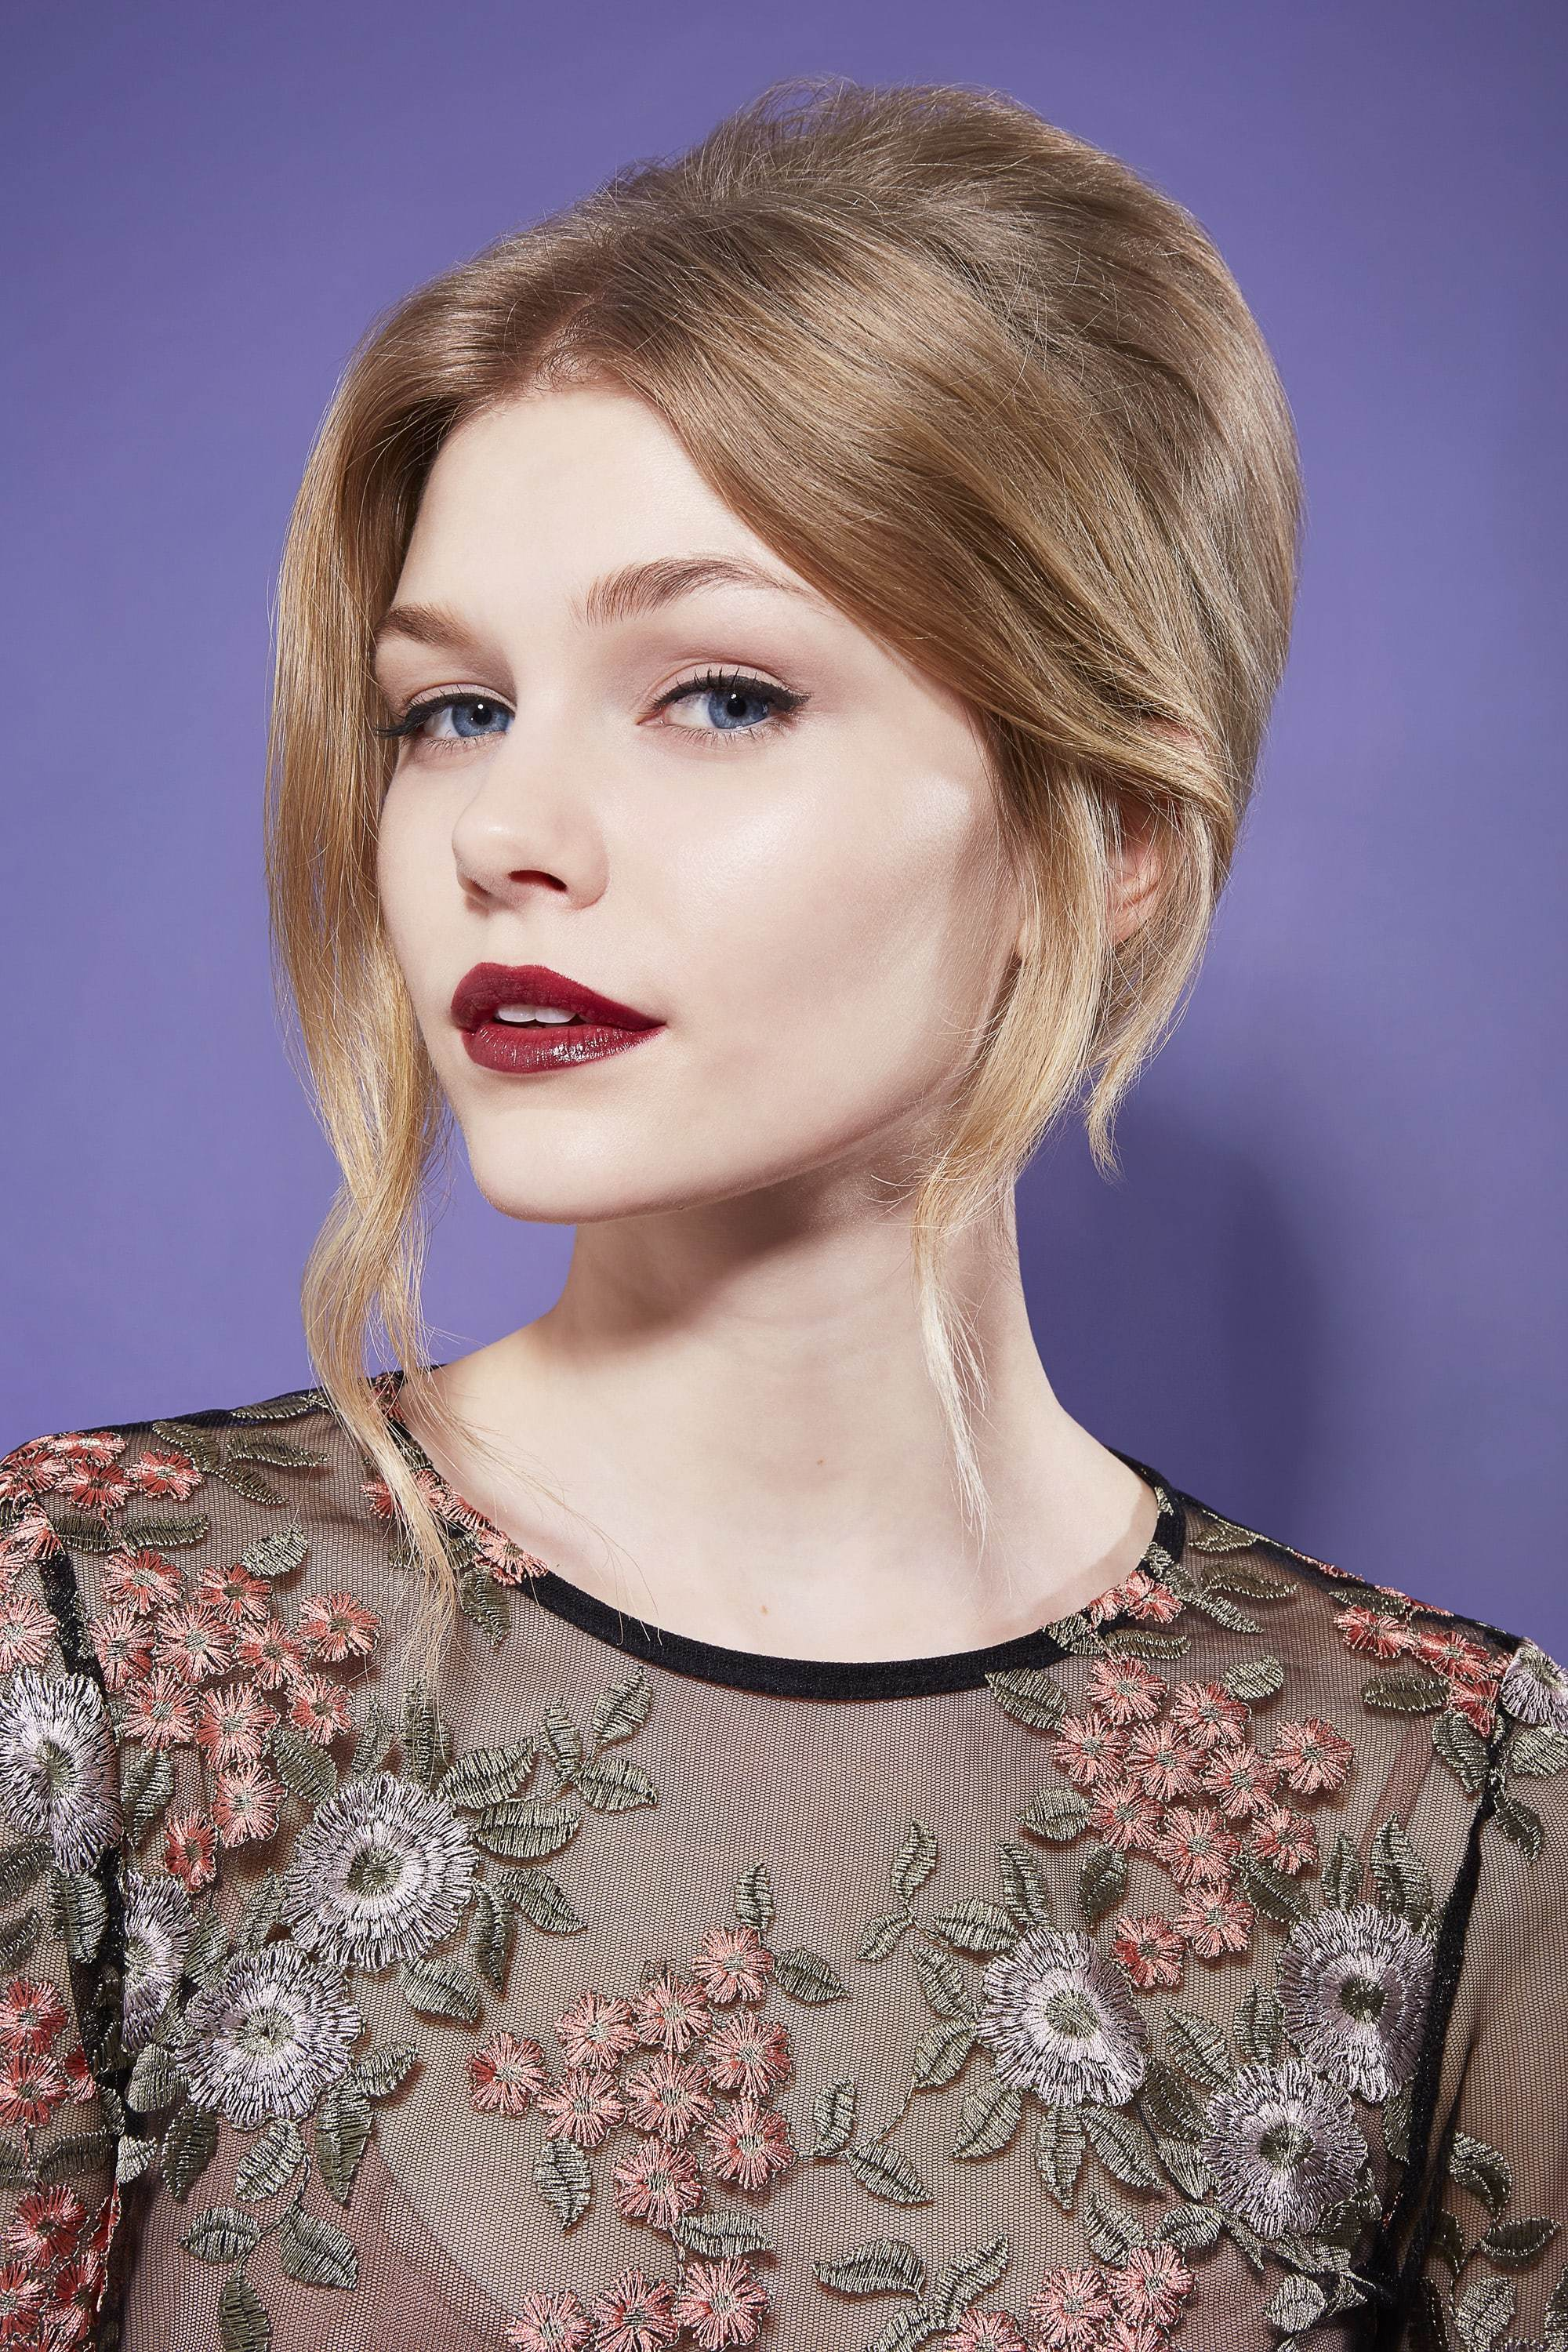 close up shot of model with romantic beehive updo hairstyle, wearing dark purple lipstick and floral top